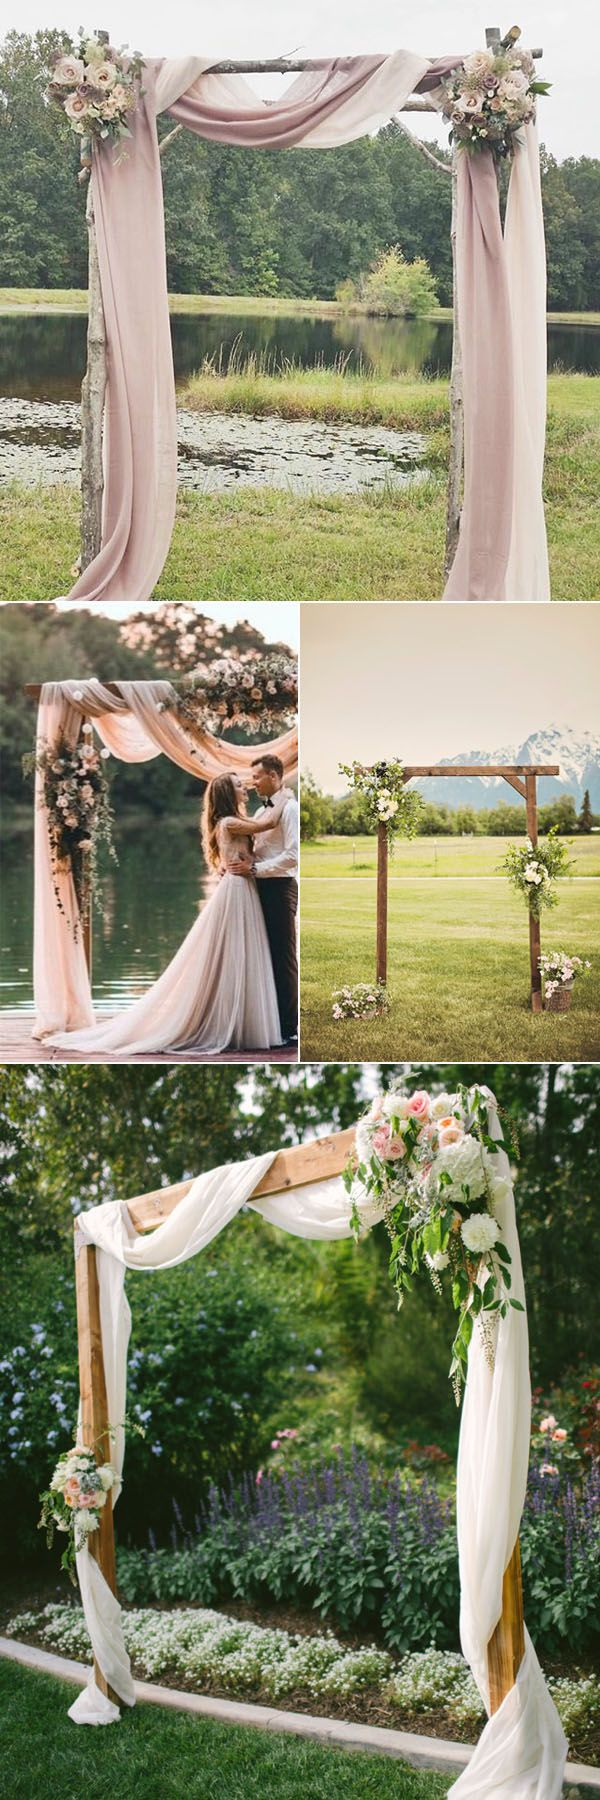 32 rustic wedding decoration ideas to inspire your big day rustic 32 rustic wedding decoration ideas to inspire your big day oh best day ever junglespirit Image collections